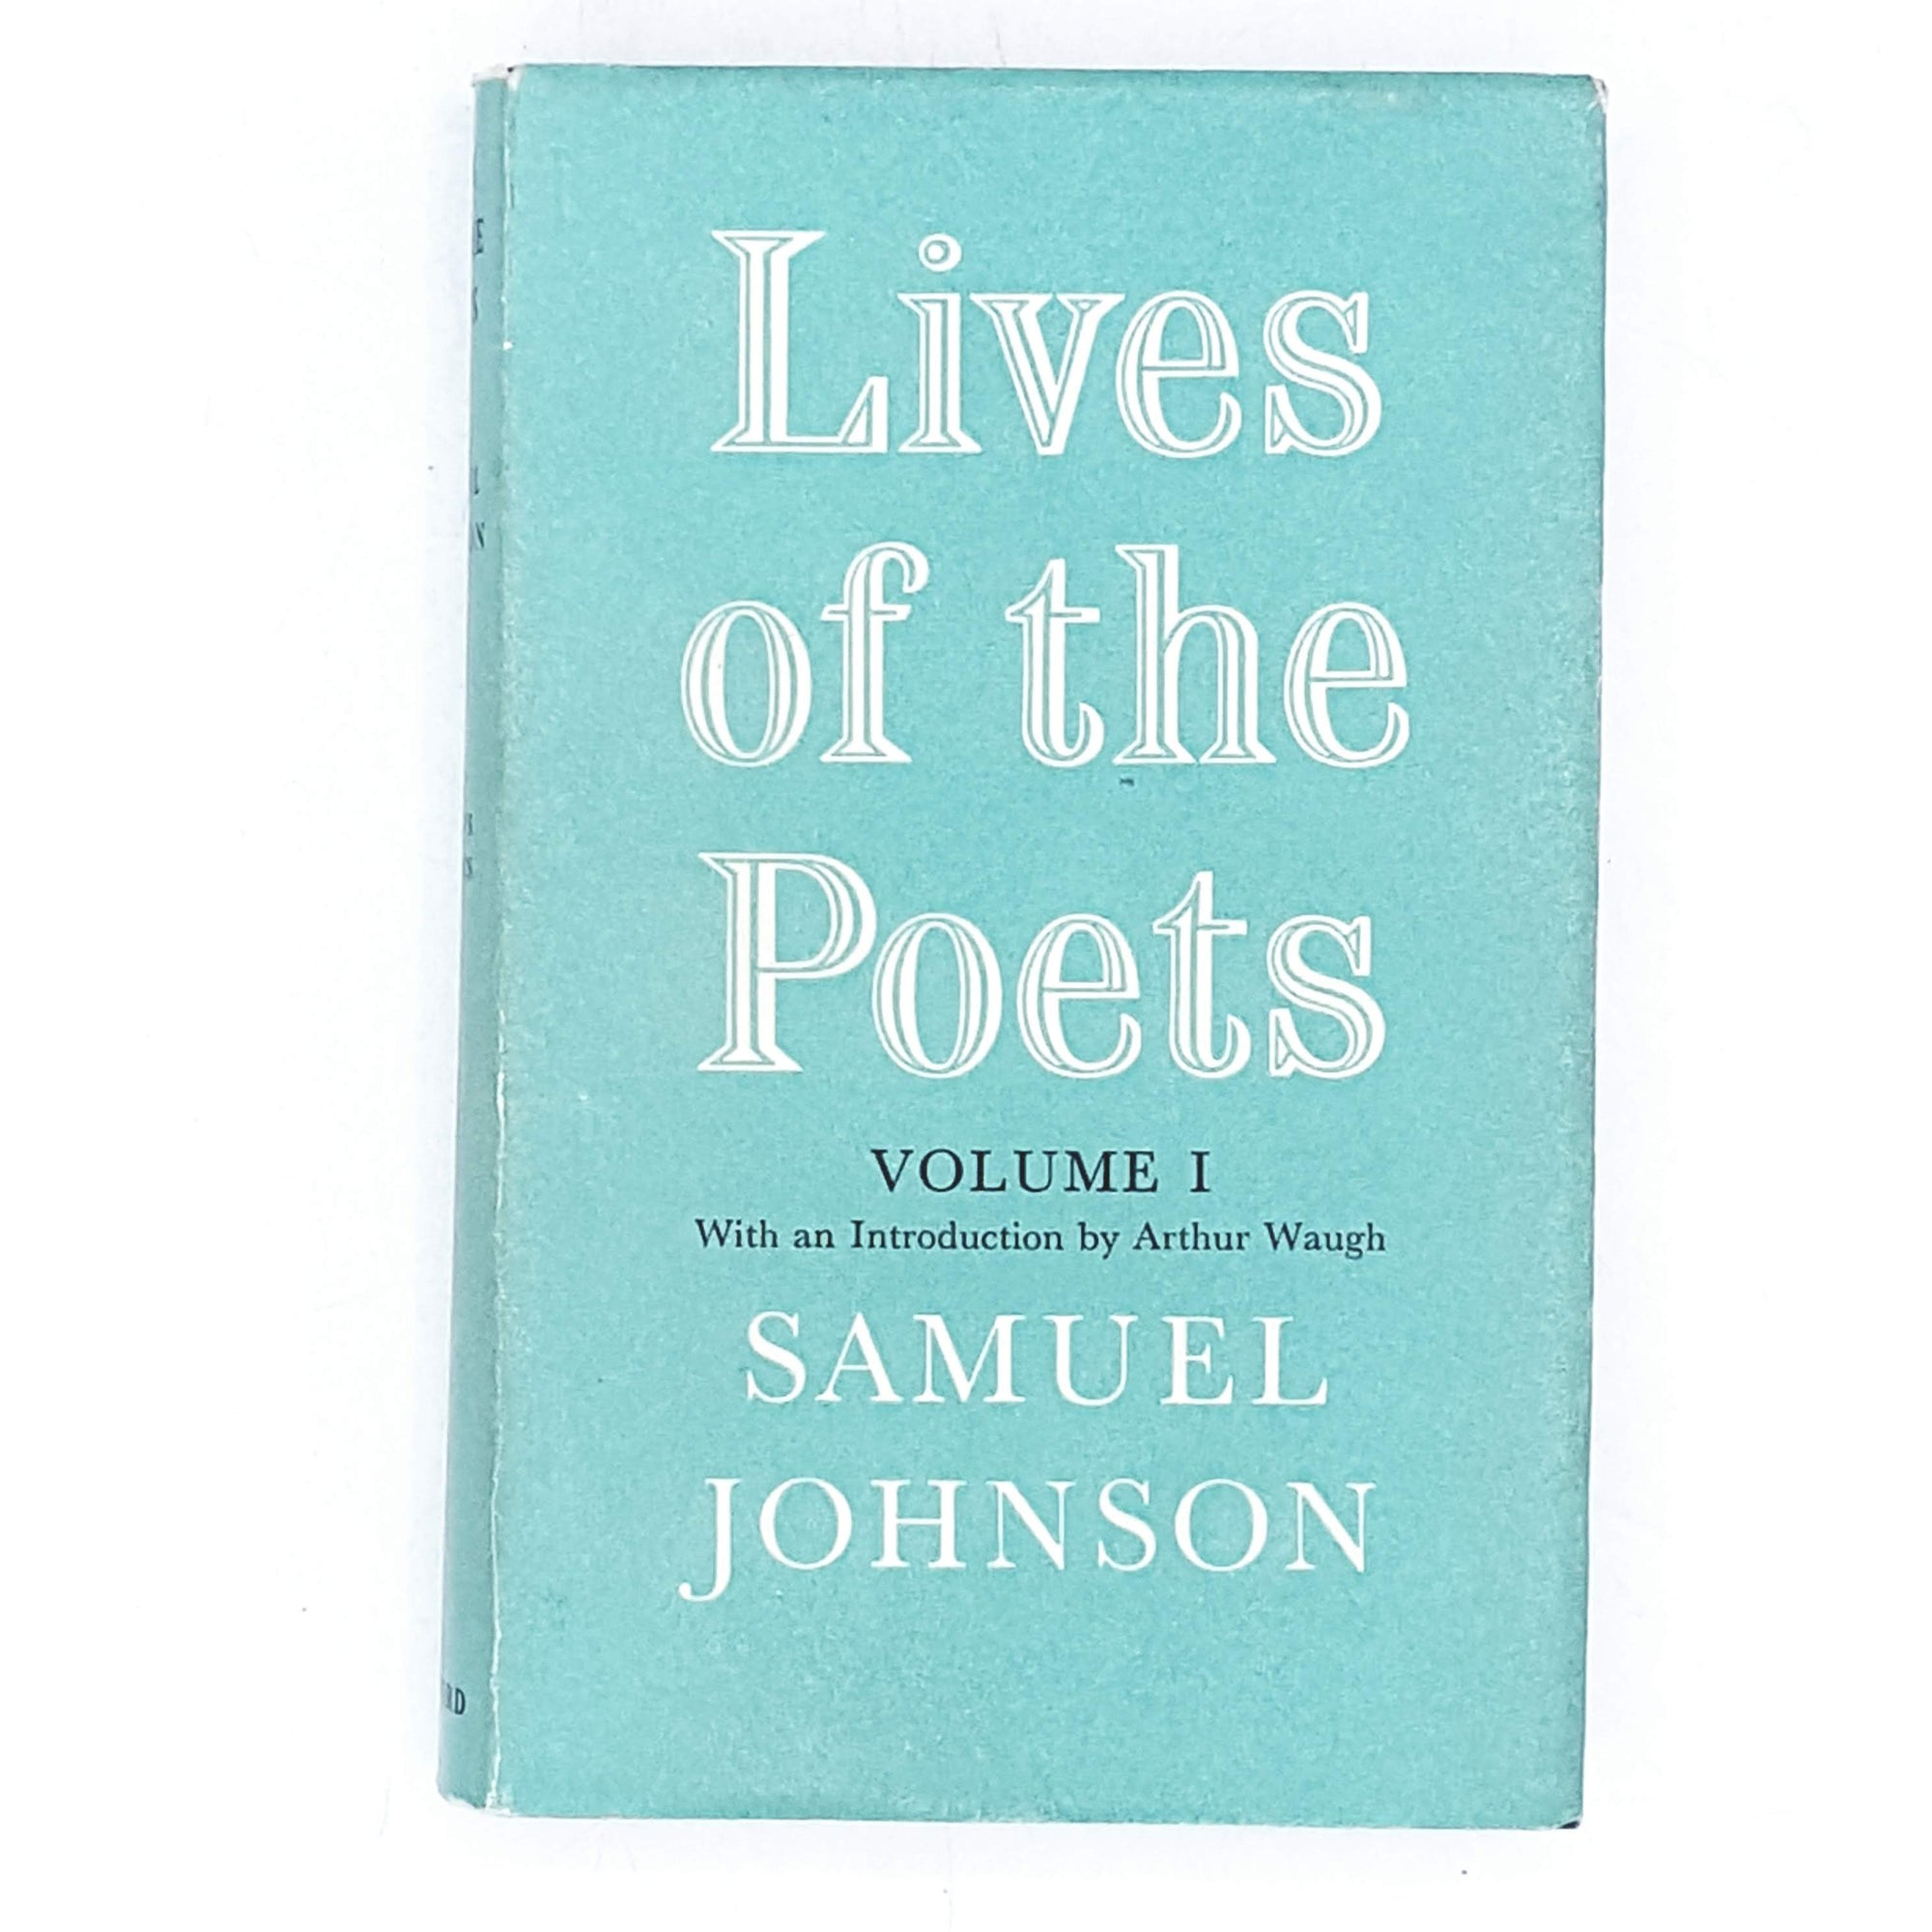 Vintage Biography: Lives of the English Poets 1968